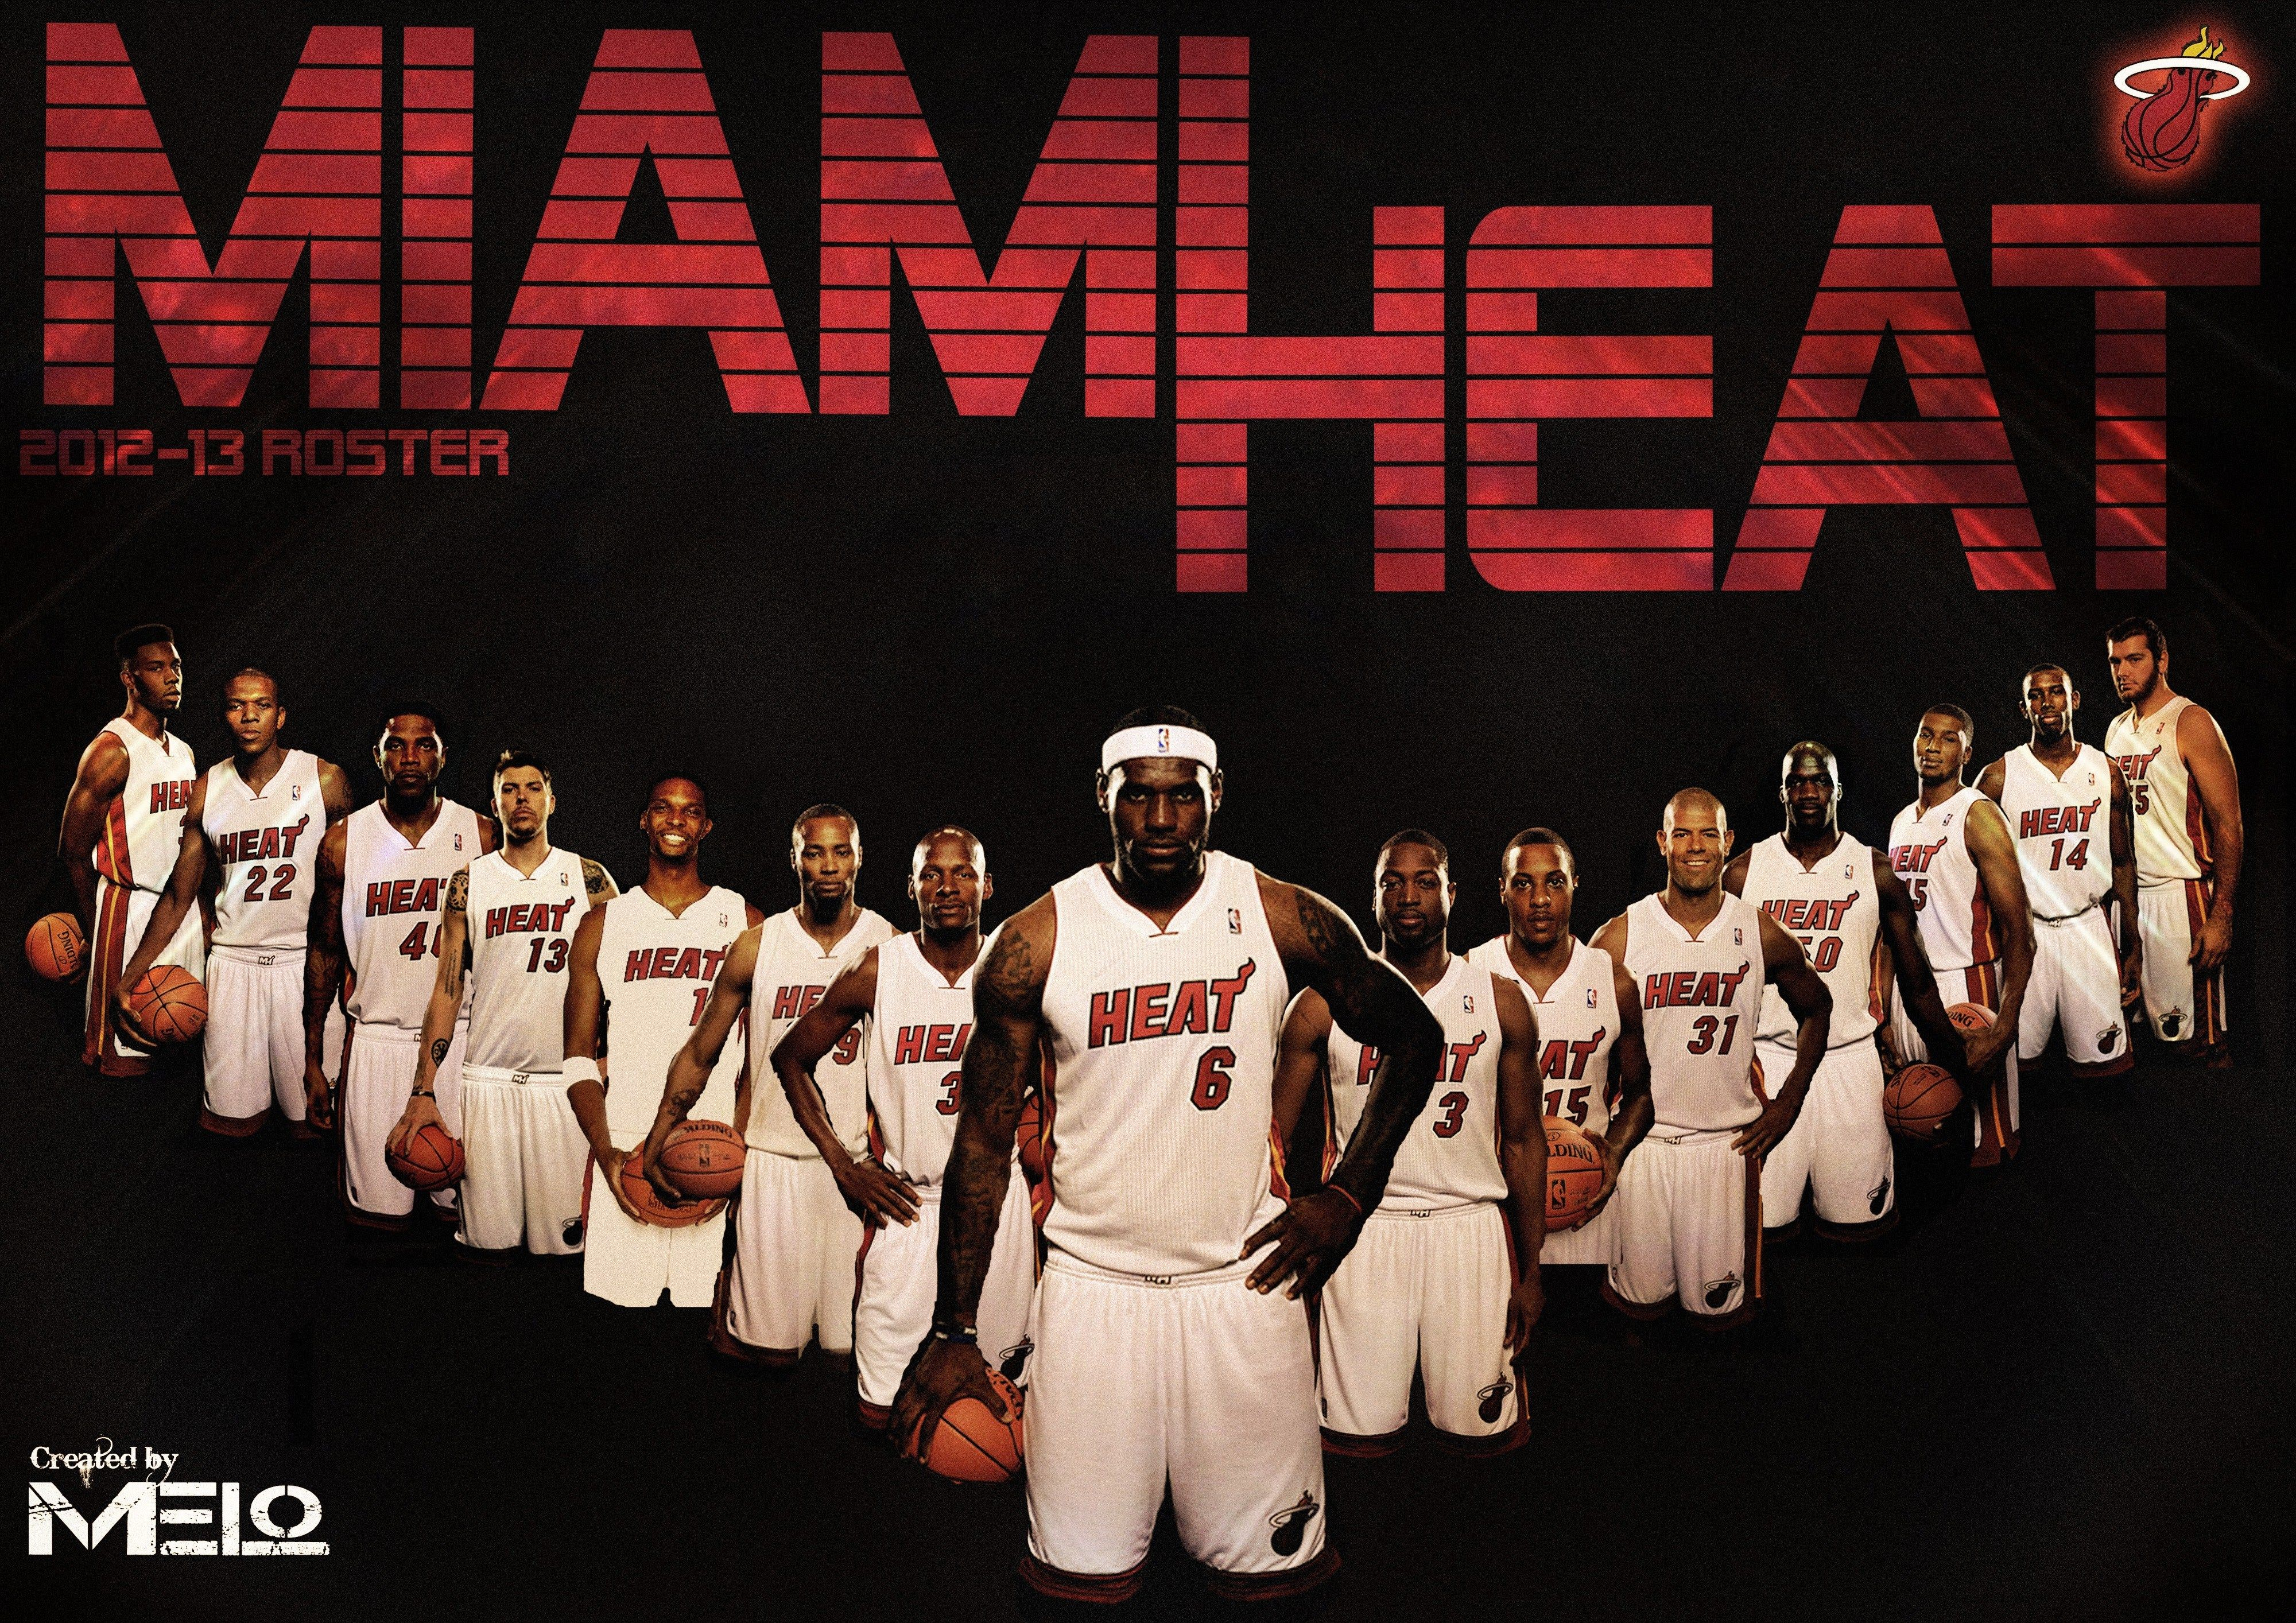 Miami heat wallpaper backgrounds hd 4049 kb kimberly gill miami heat wallpaper backgrounds hd 4049 kb kimberly gill voltagebd Choice Image